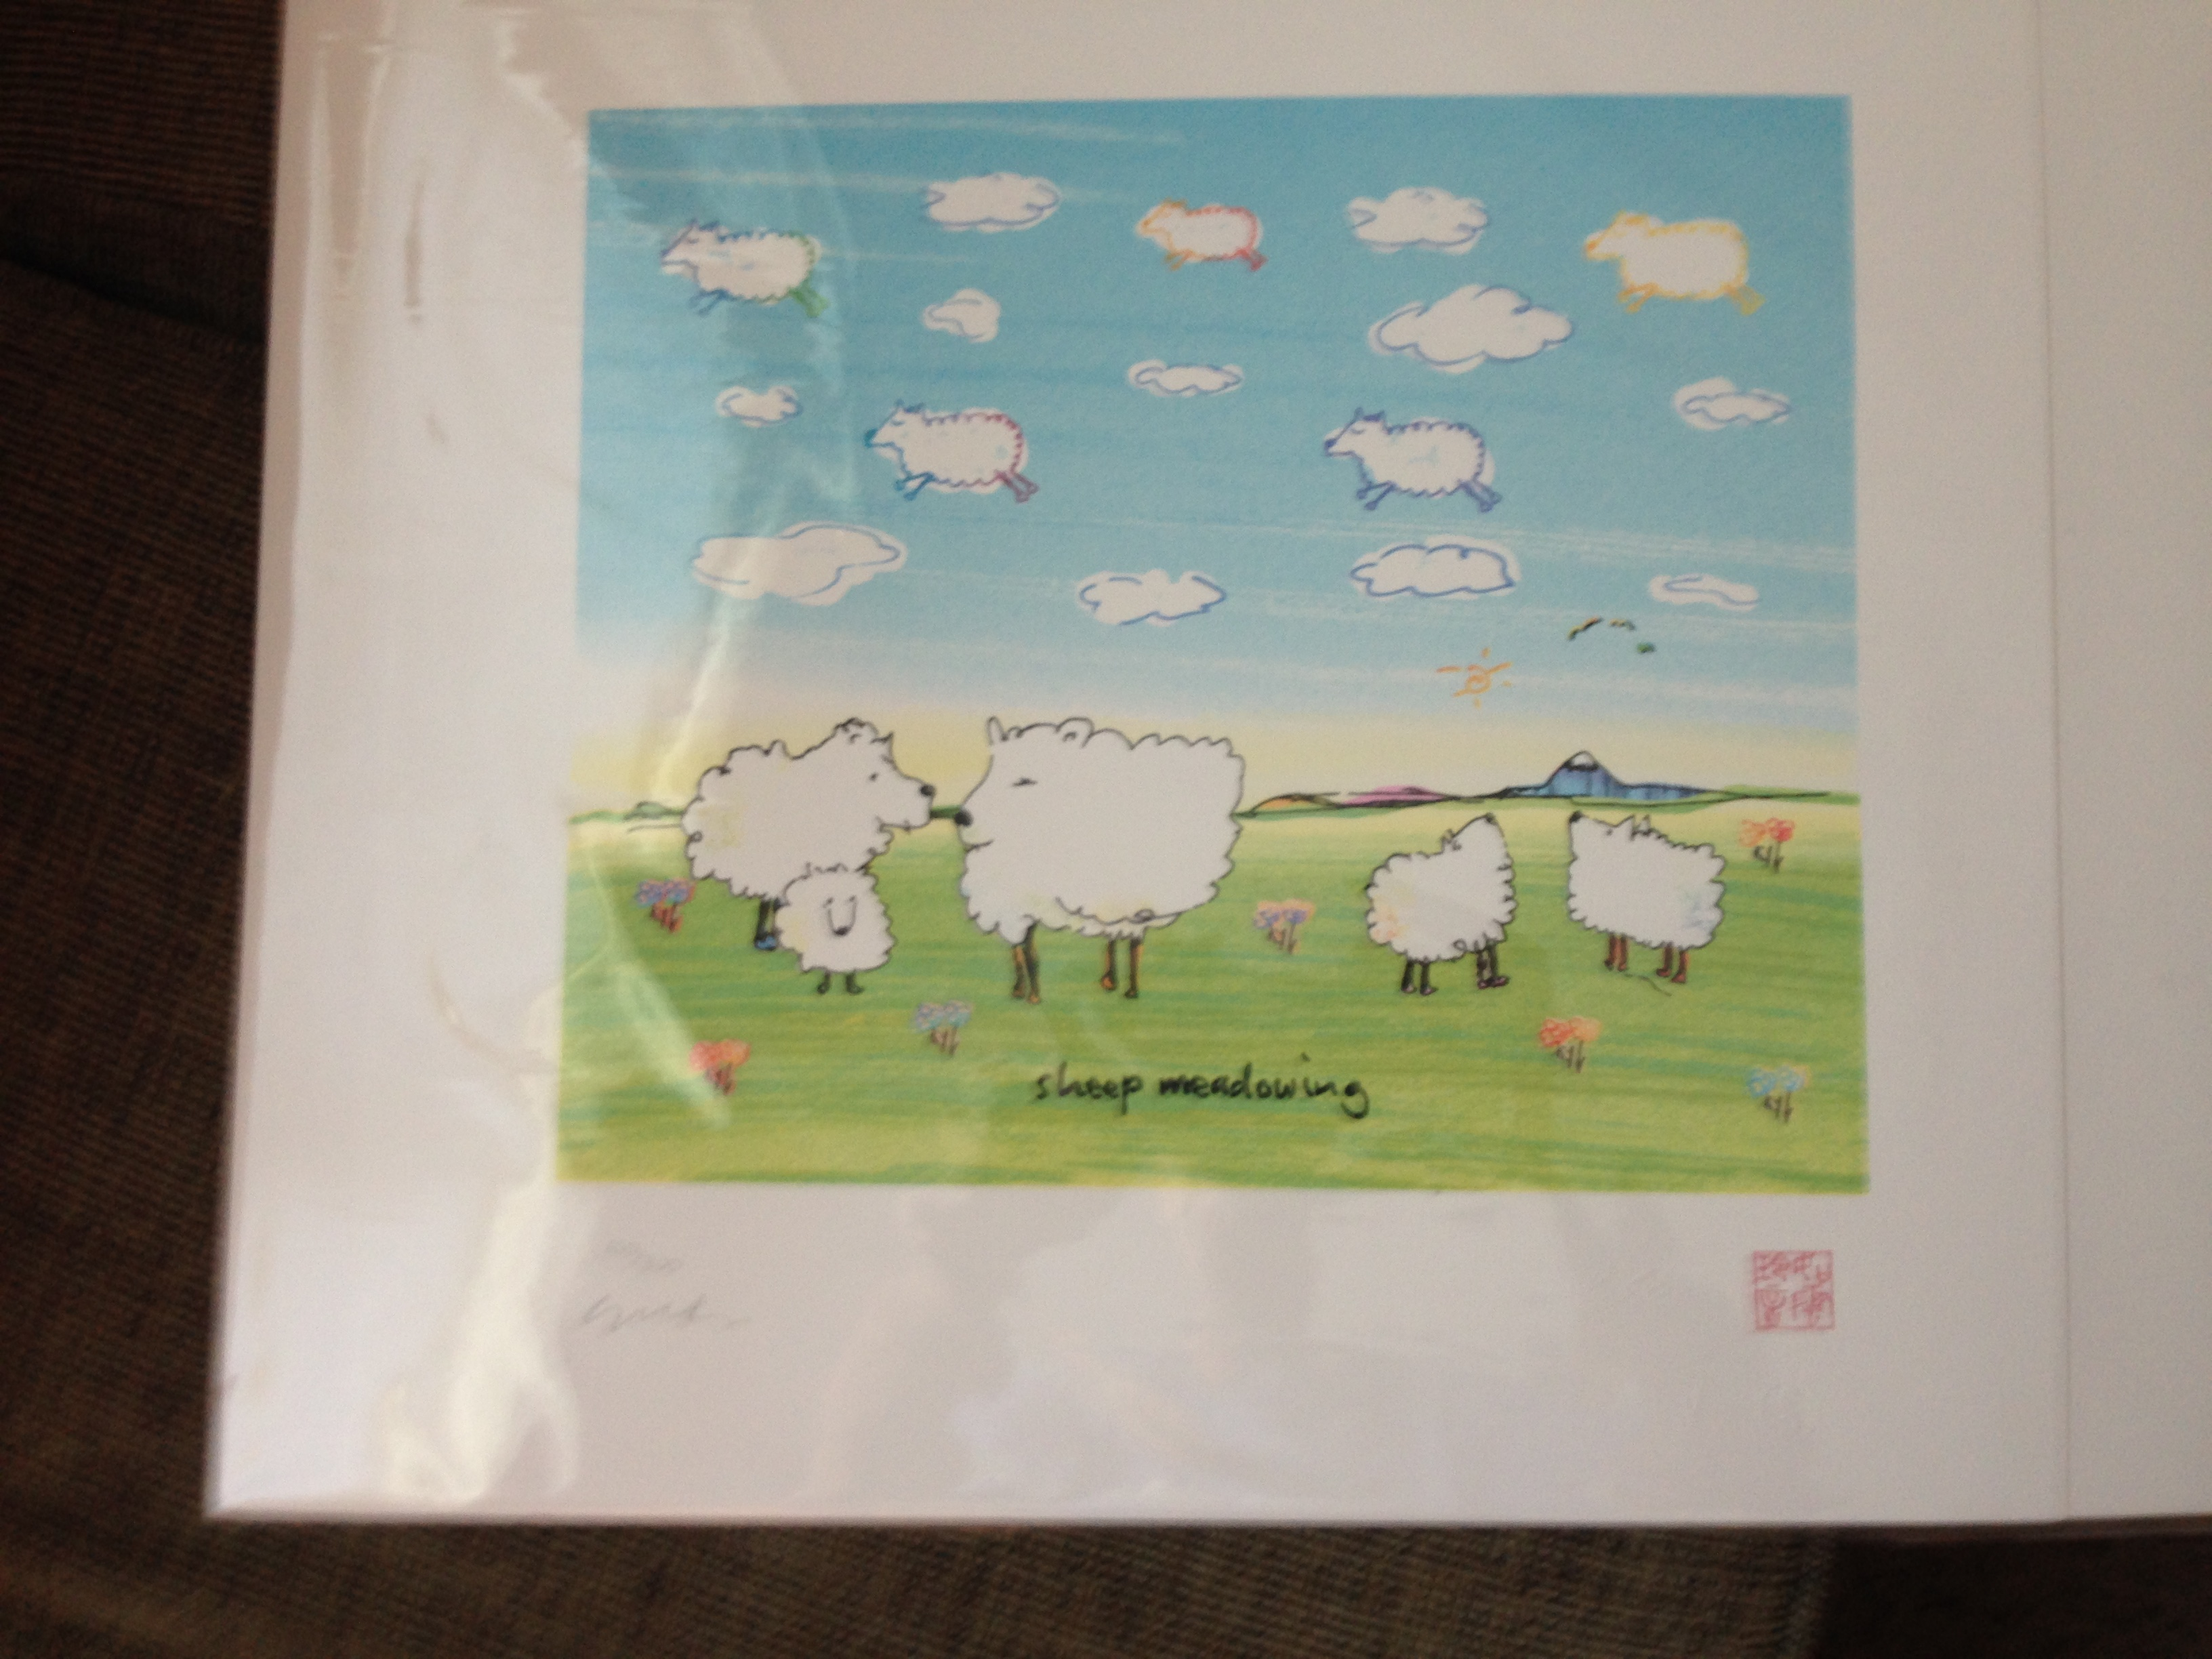 Sheep Meadowing artwork by John Lennon - art listed for sale on Artplode